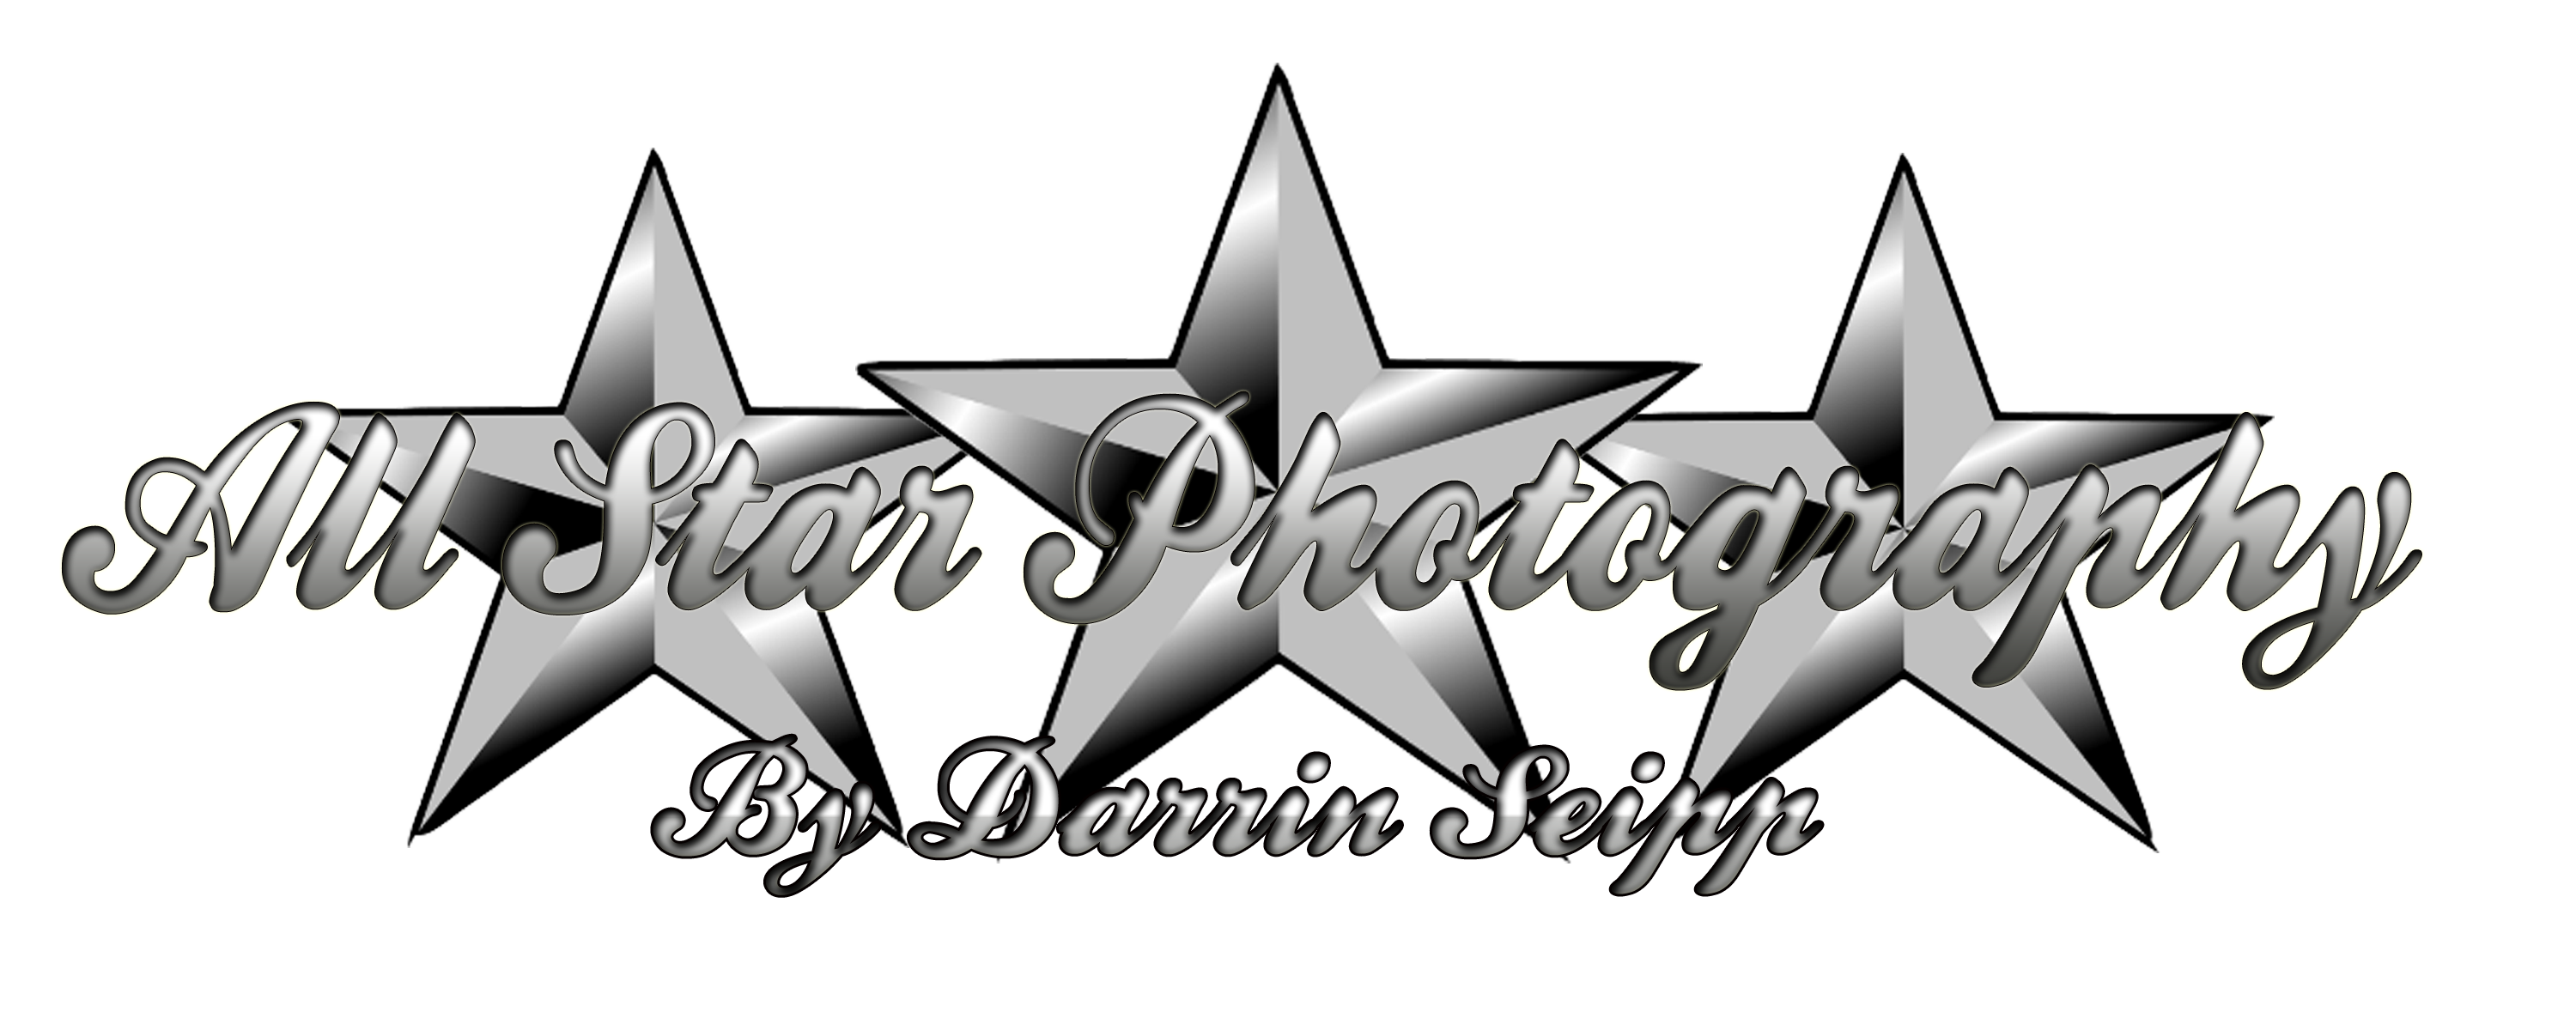 Allstarlogotransparent